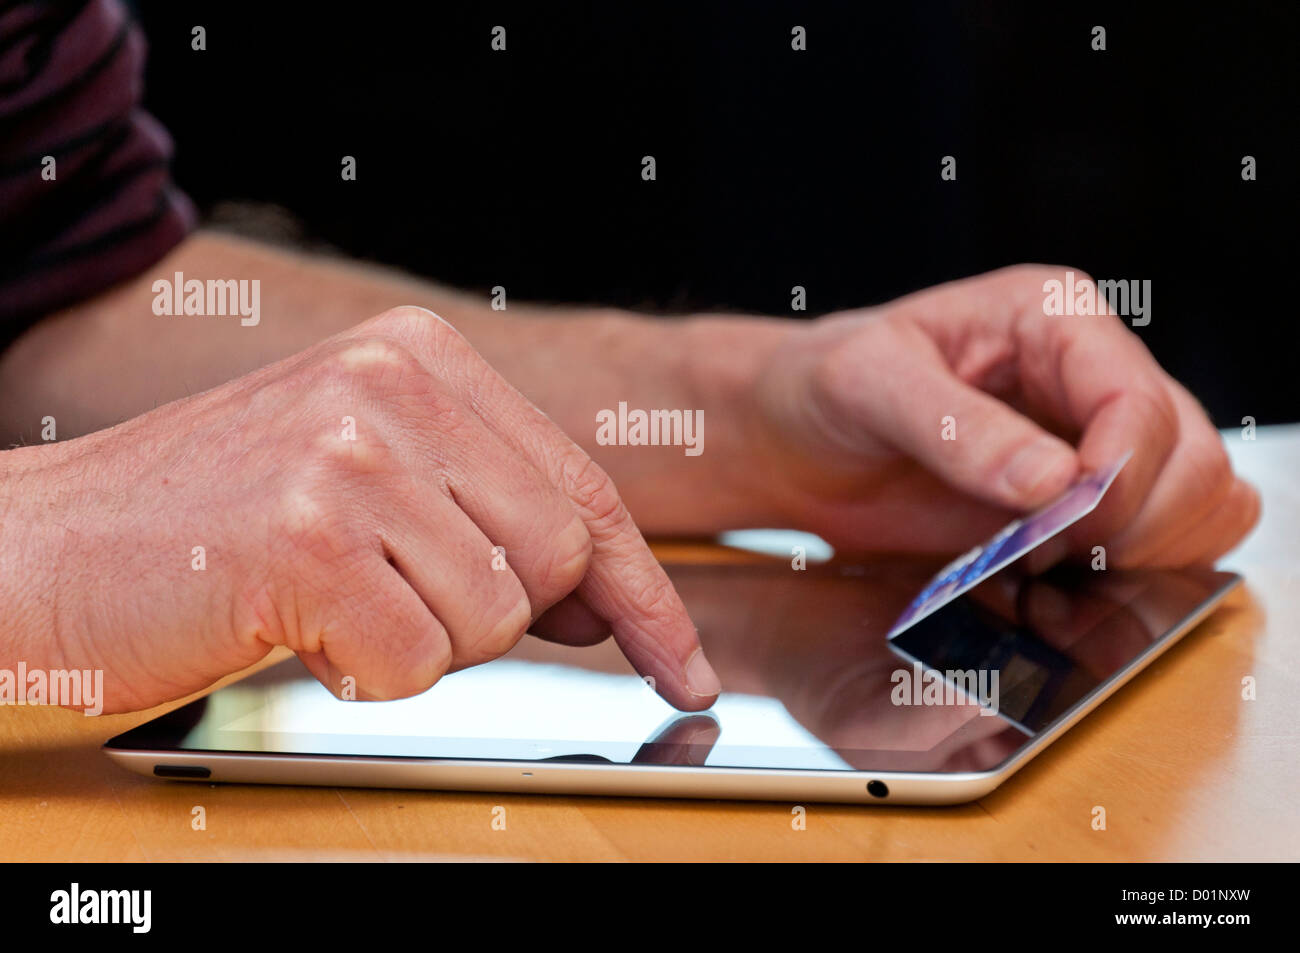 Shopping online with a tablet computer. - Stock Image